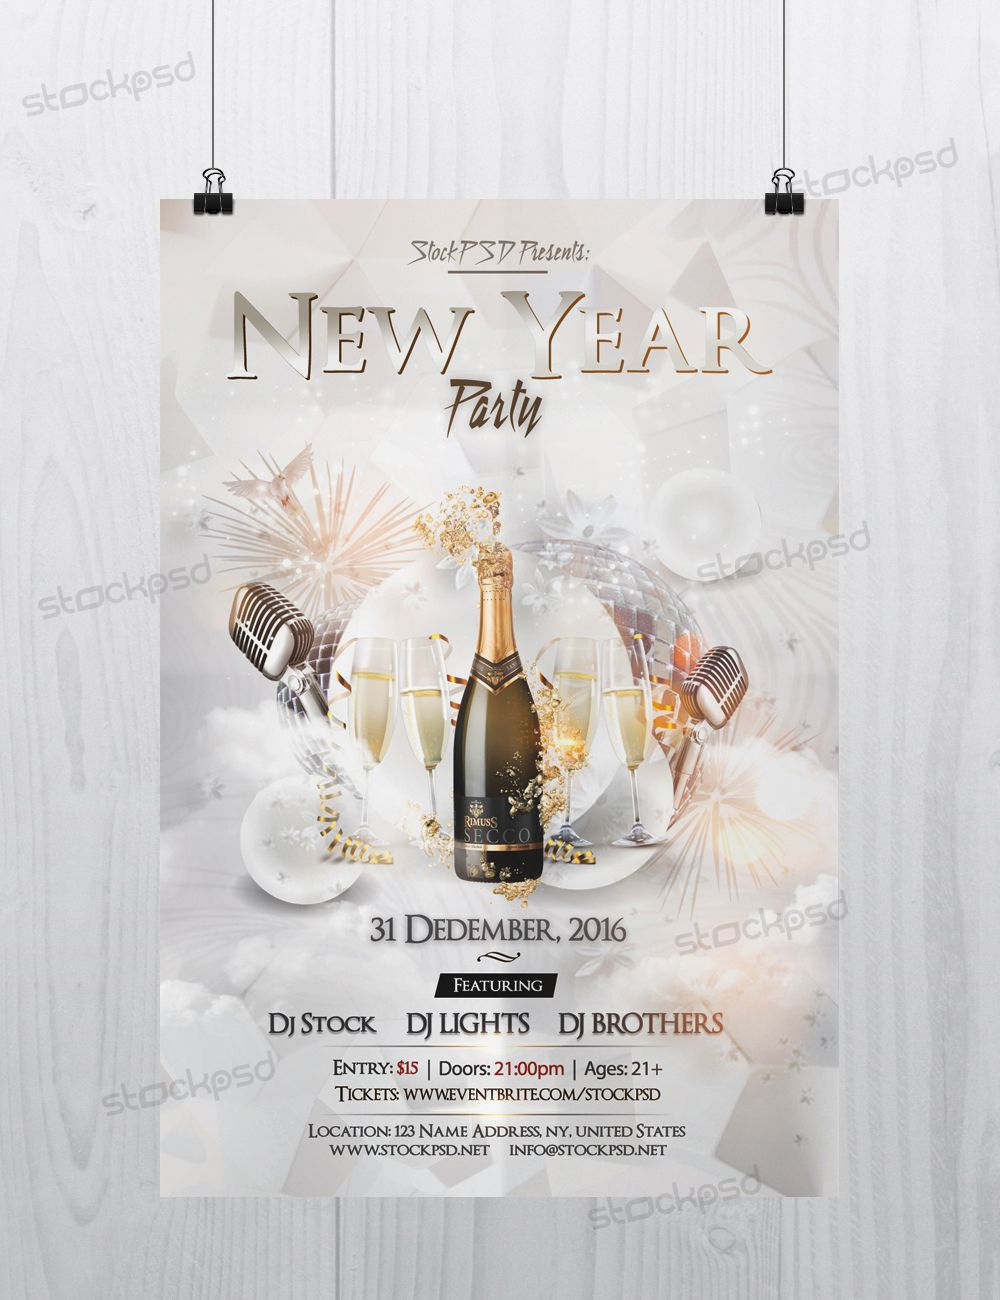 New Year 2017 Party – PSD Free NYE Flyer Template | PSD Flyers ...